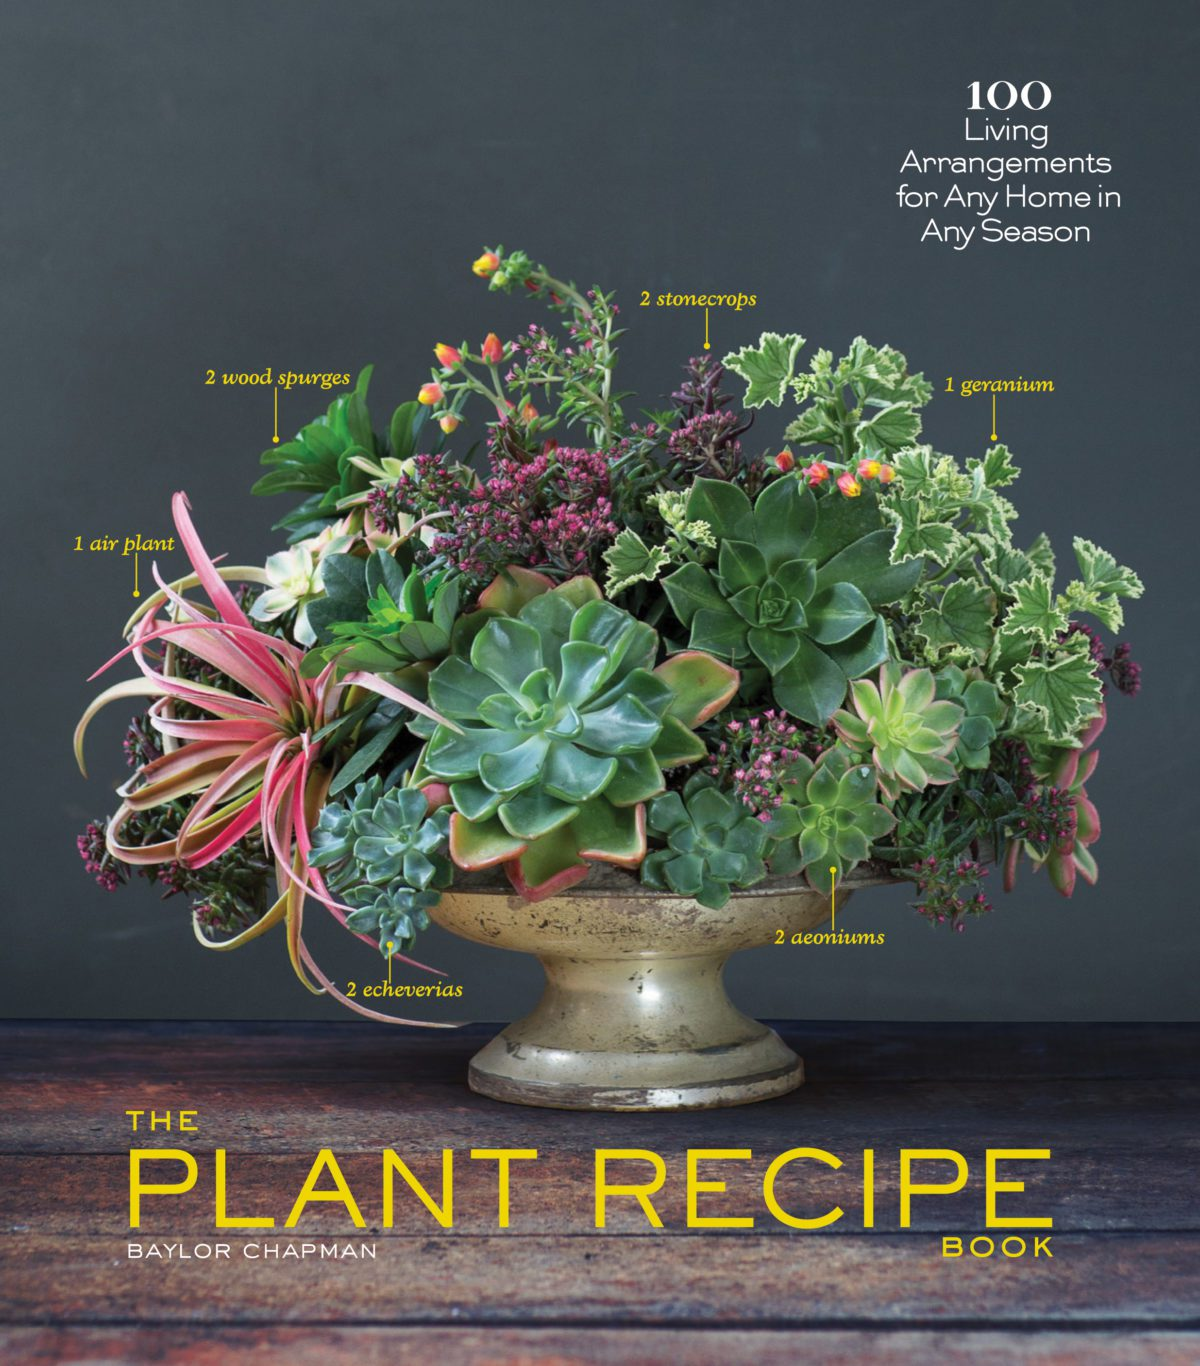 Plant Recipe Book by Baylor Chapman read create study in the pursuit